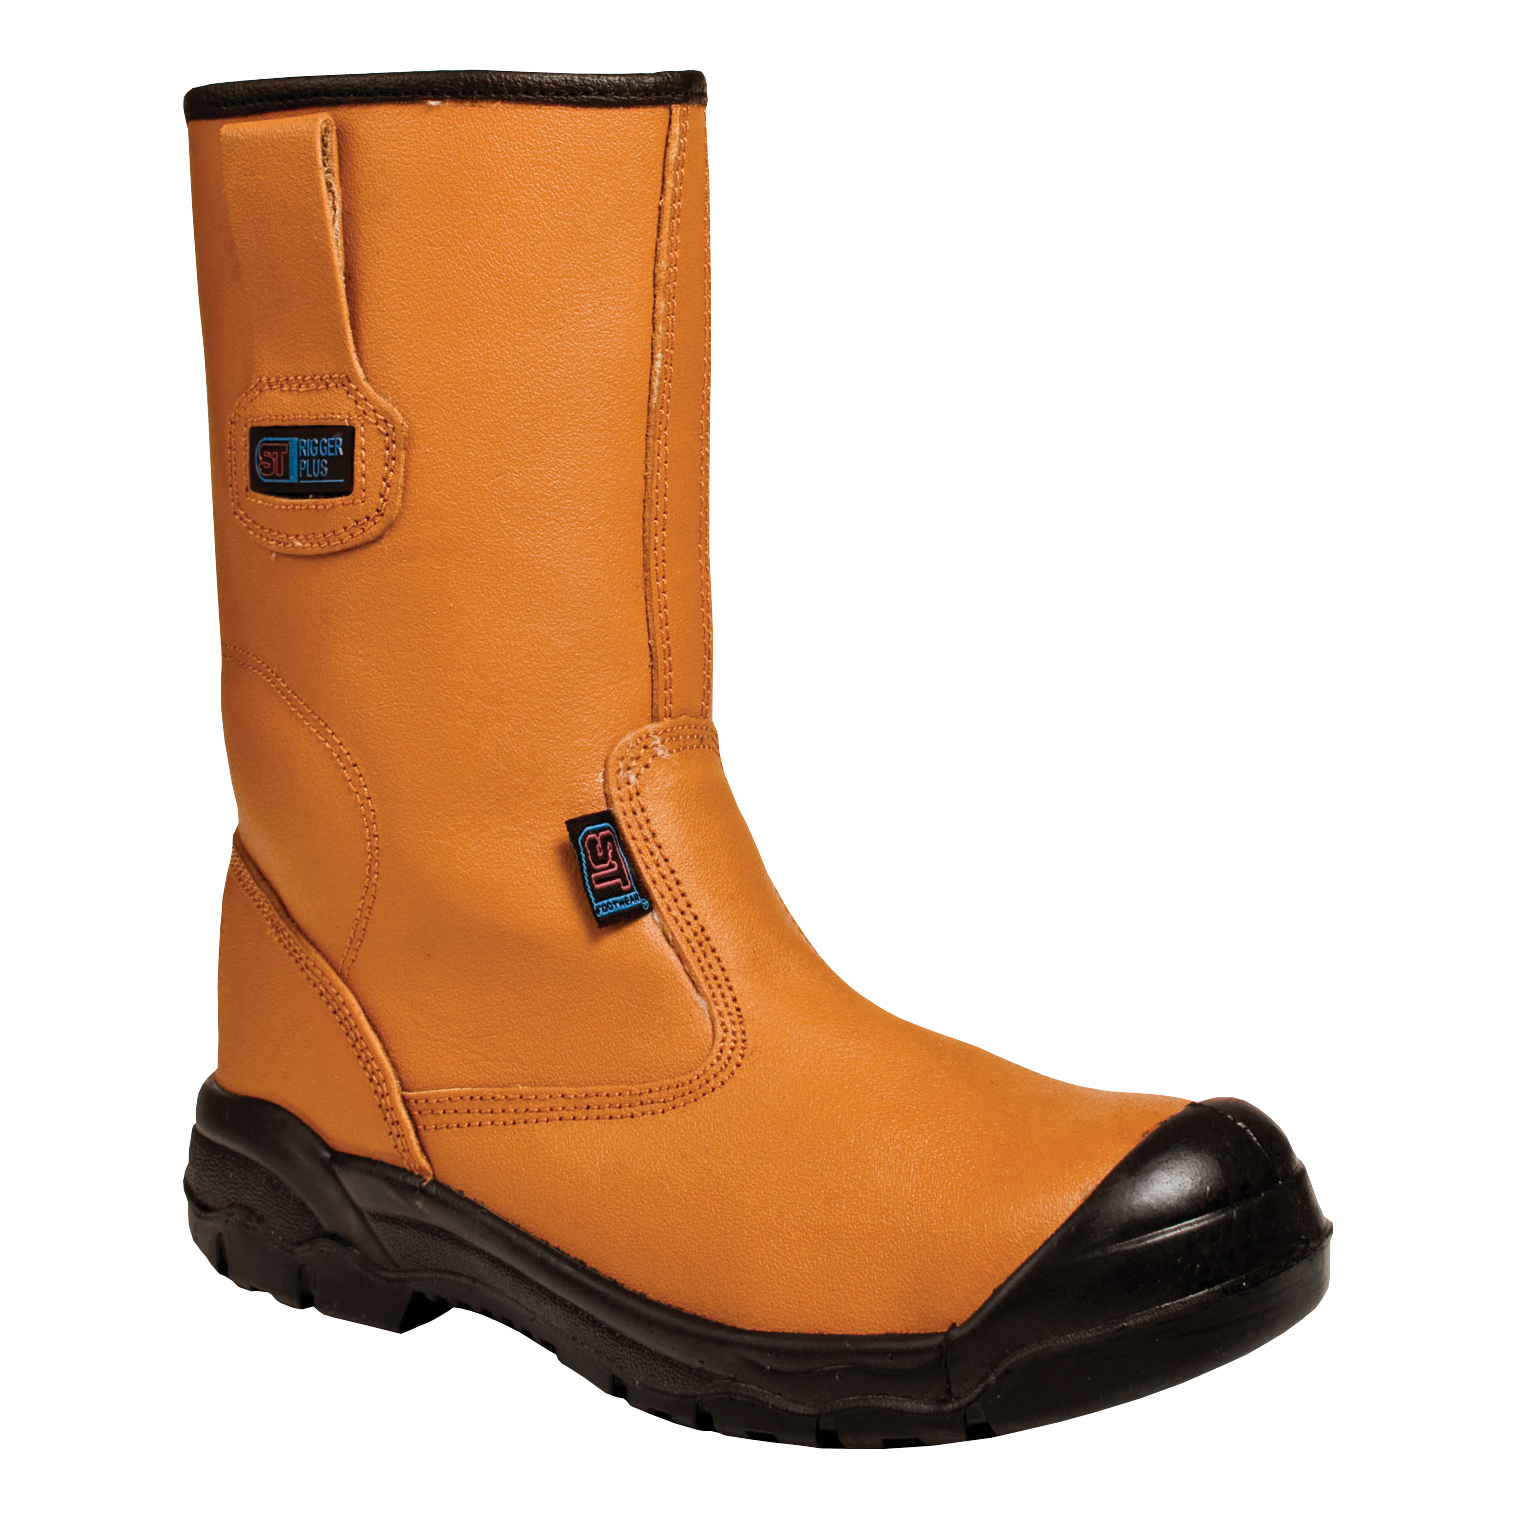 Supertouch Rigger Boot Plus Leather with Rubber Toecap Size 8 Tan Ref 90513 *Approx 3 Day Leadtime*